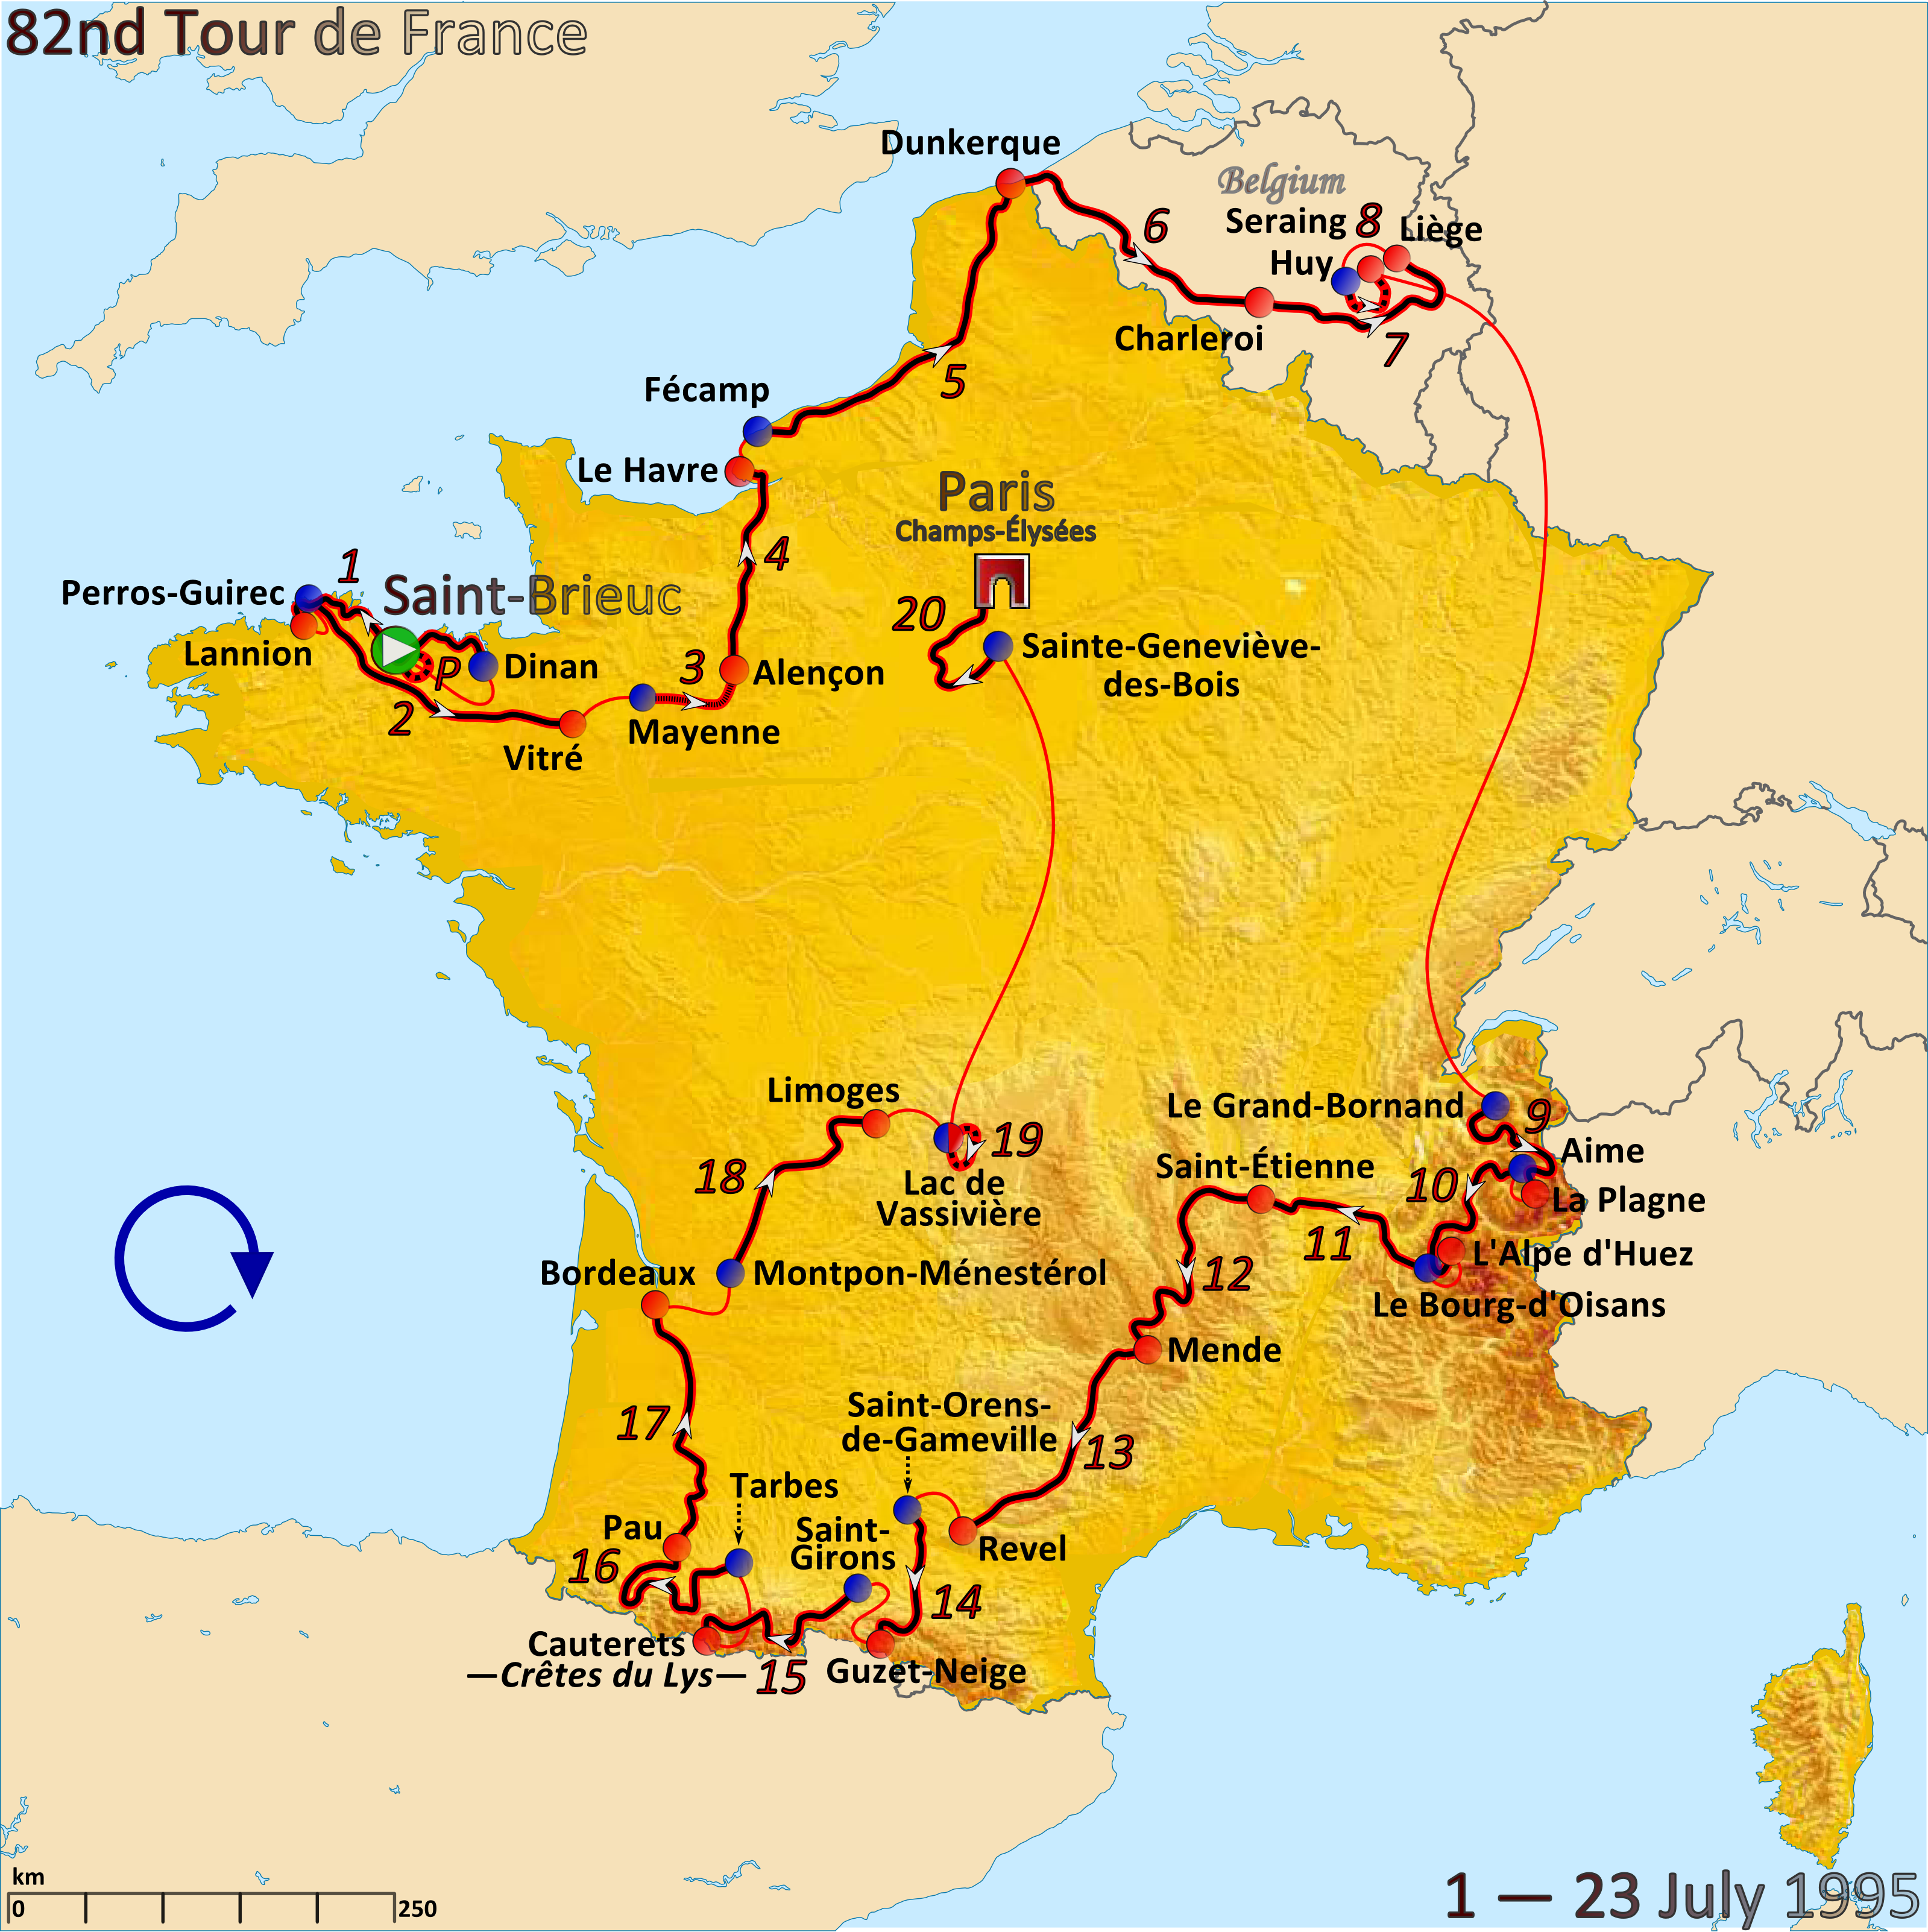 FileRoute of the 1995 Tour de Francepng Wikimedia Commons